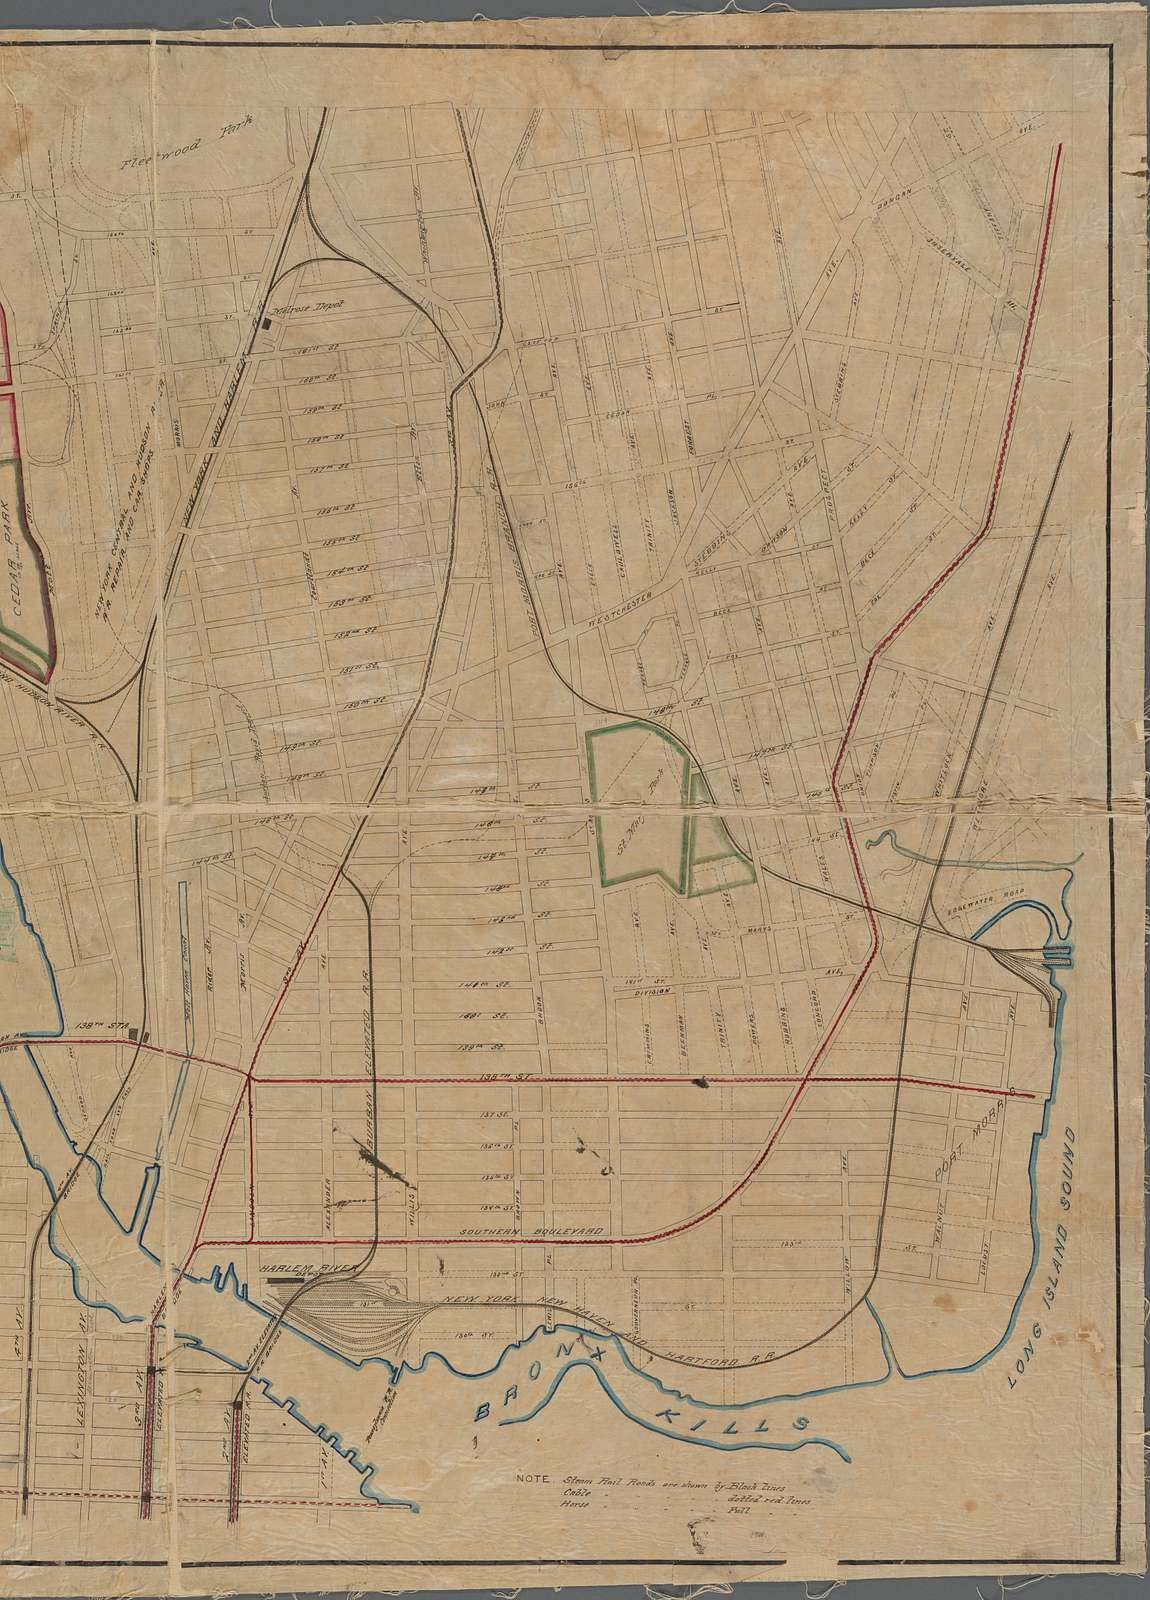 Map showing steam, cable, and horse roads in the Bronx